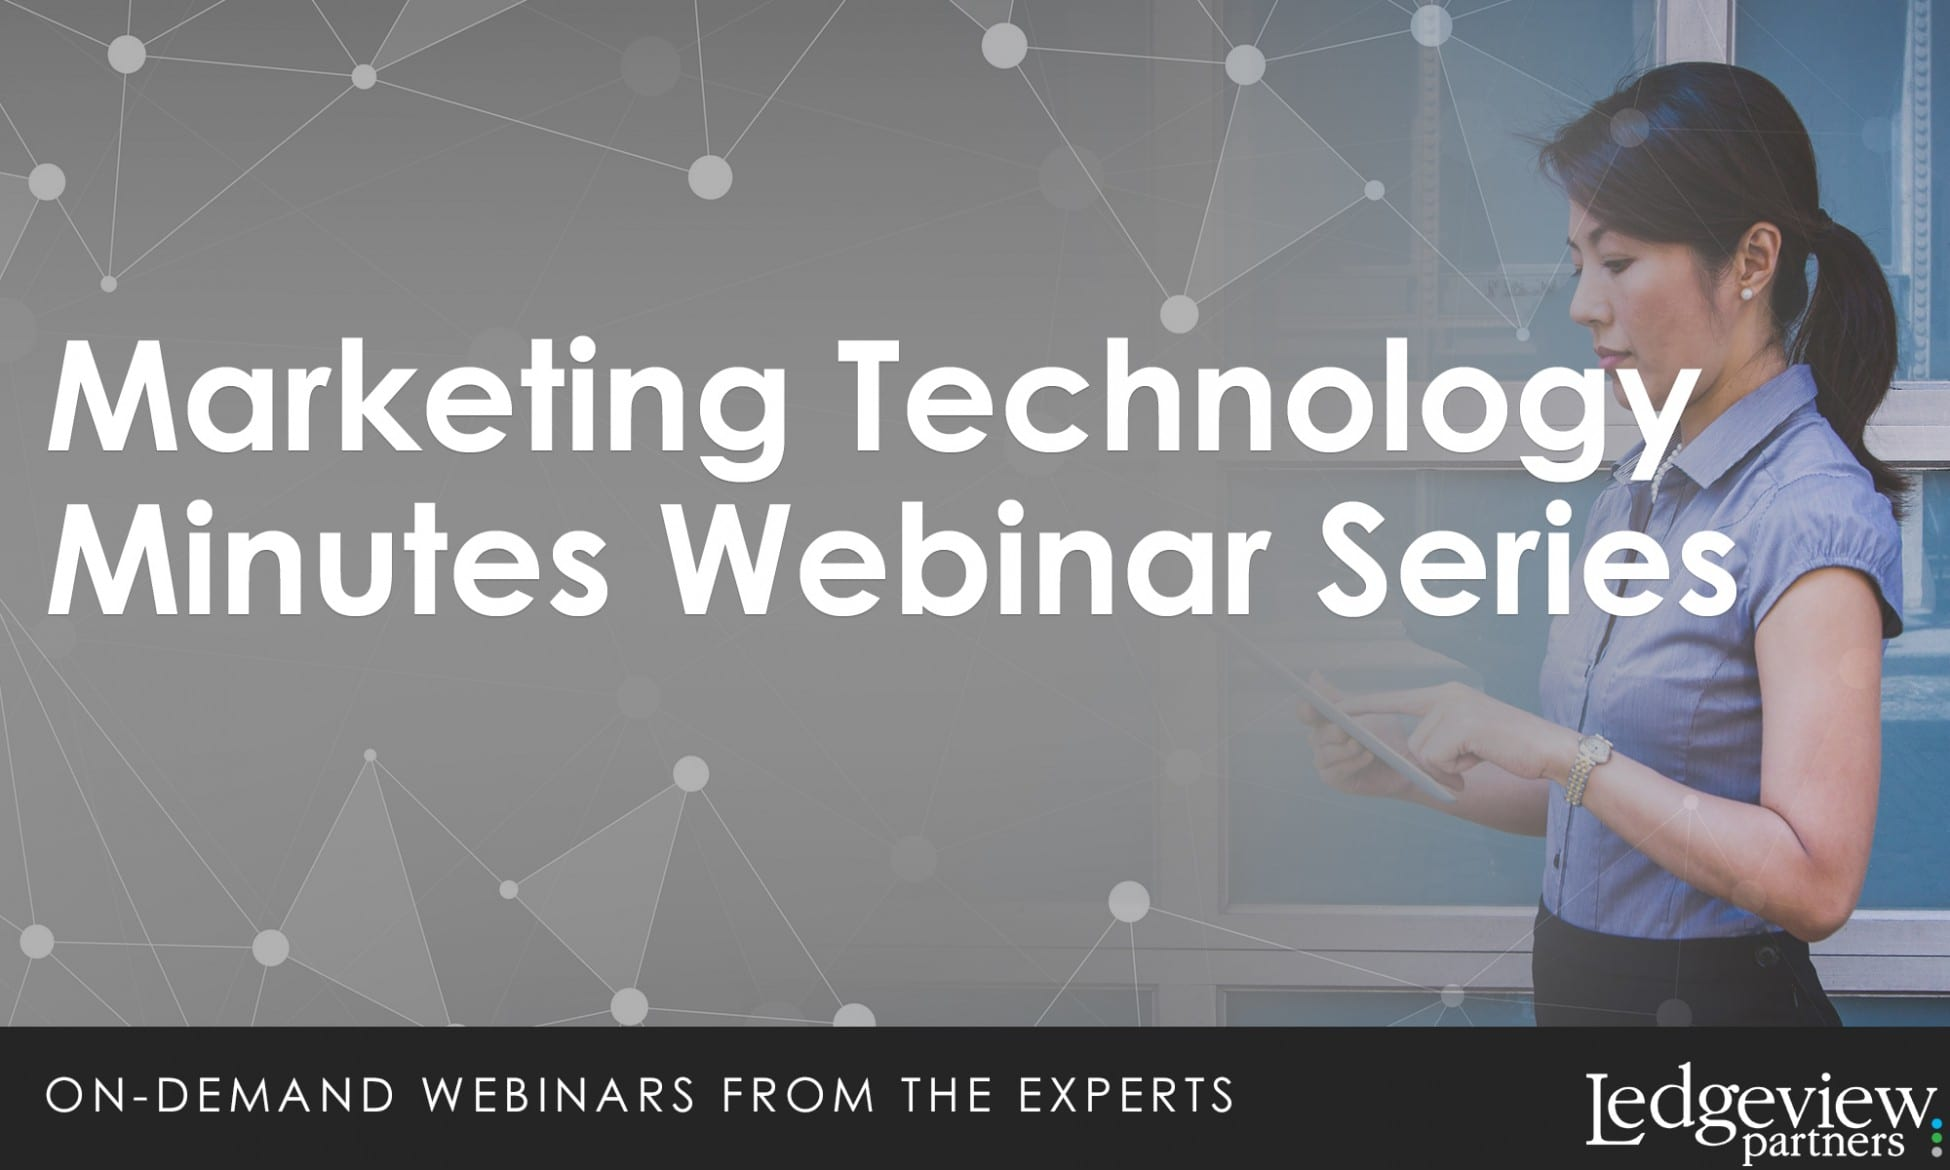 marketing technology minutes webinars by Ledgeview